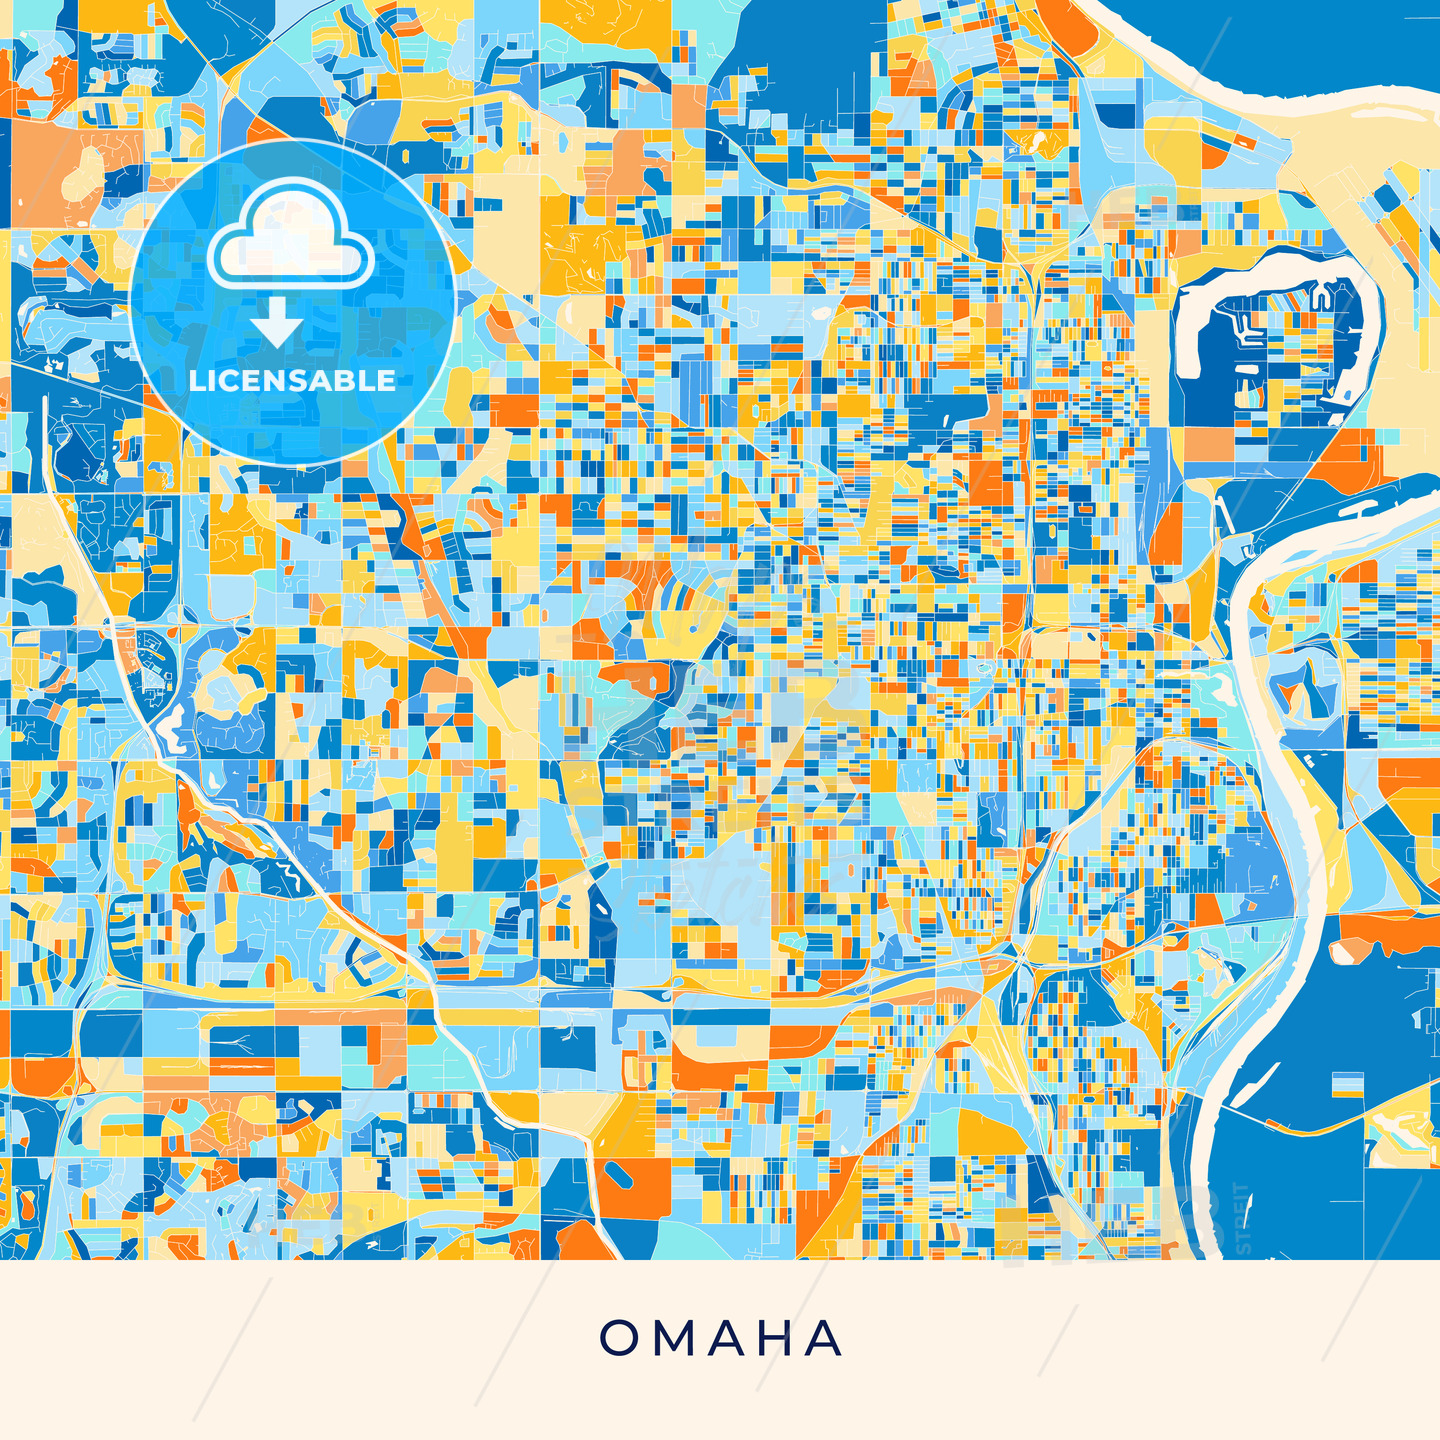 Omaha colorful map poster template on